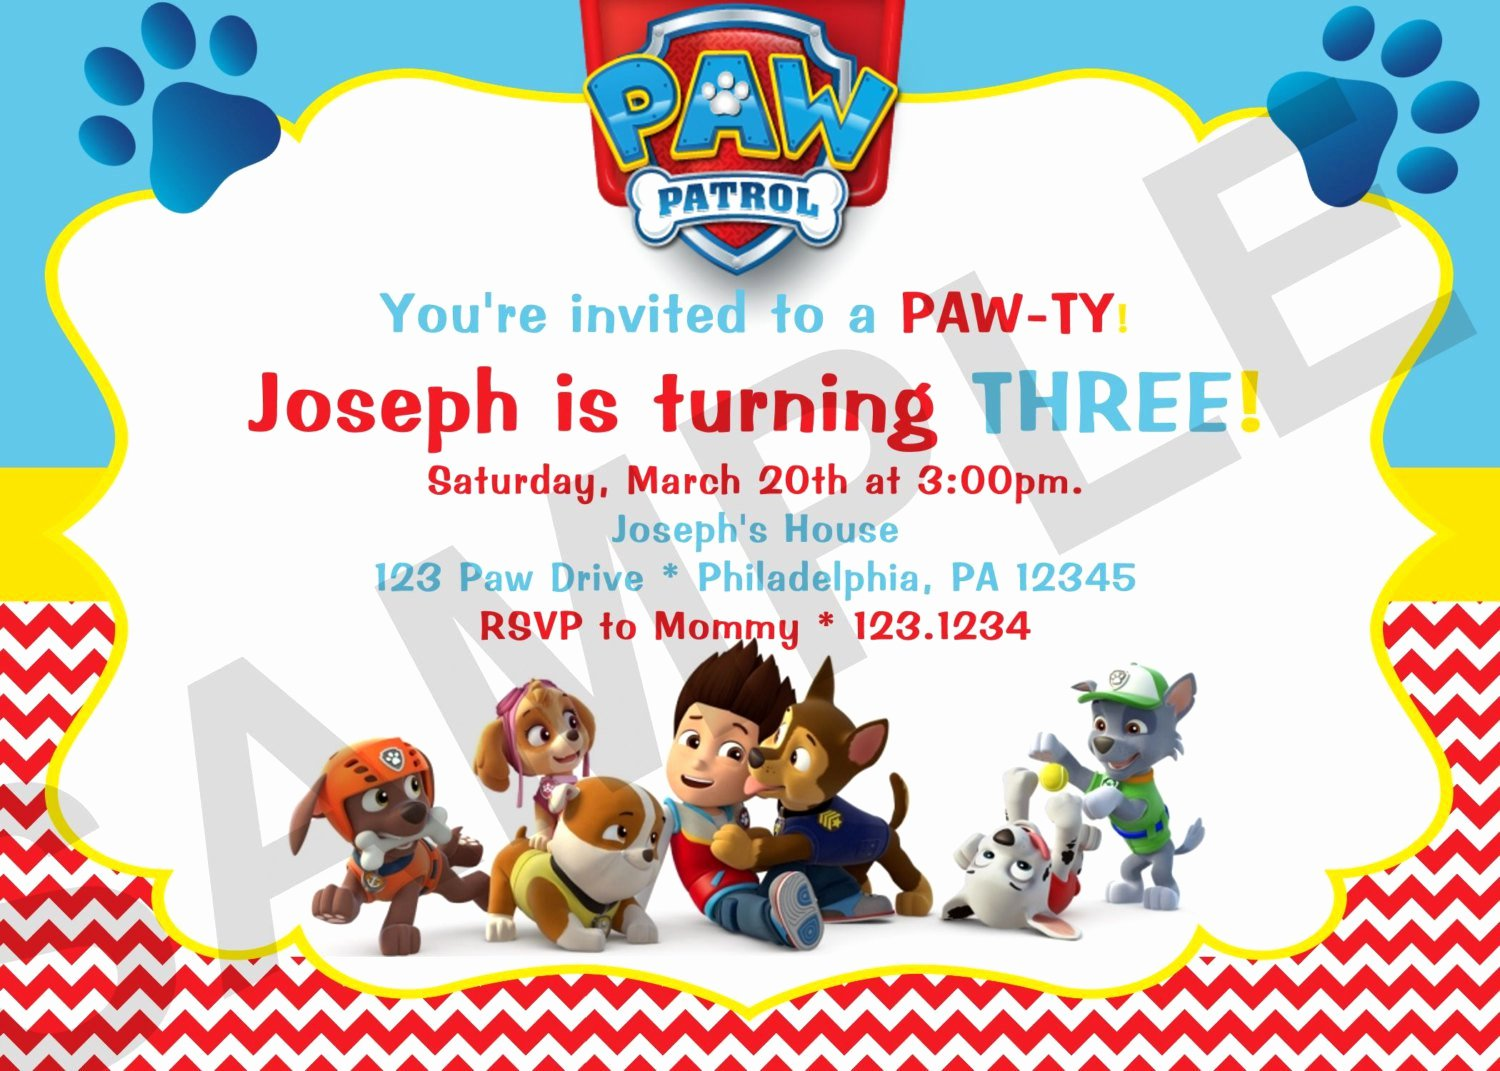 Paw Patrol Invitation Template Free Luxury Paw Patrol Birthday Invitations Paw Patrol Birthday